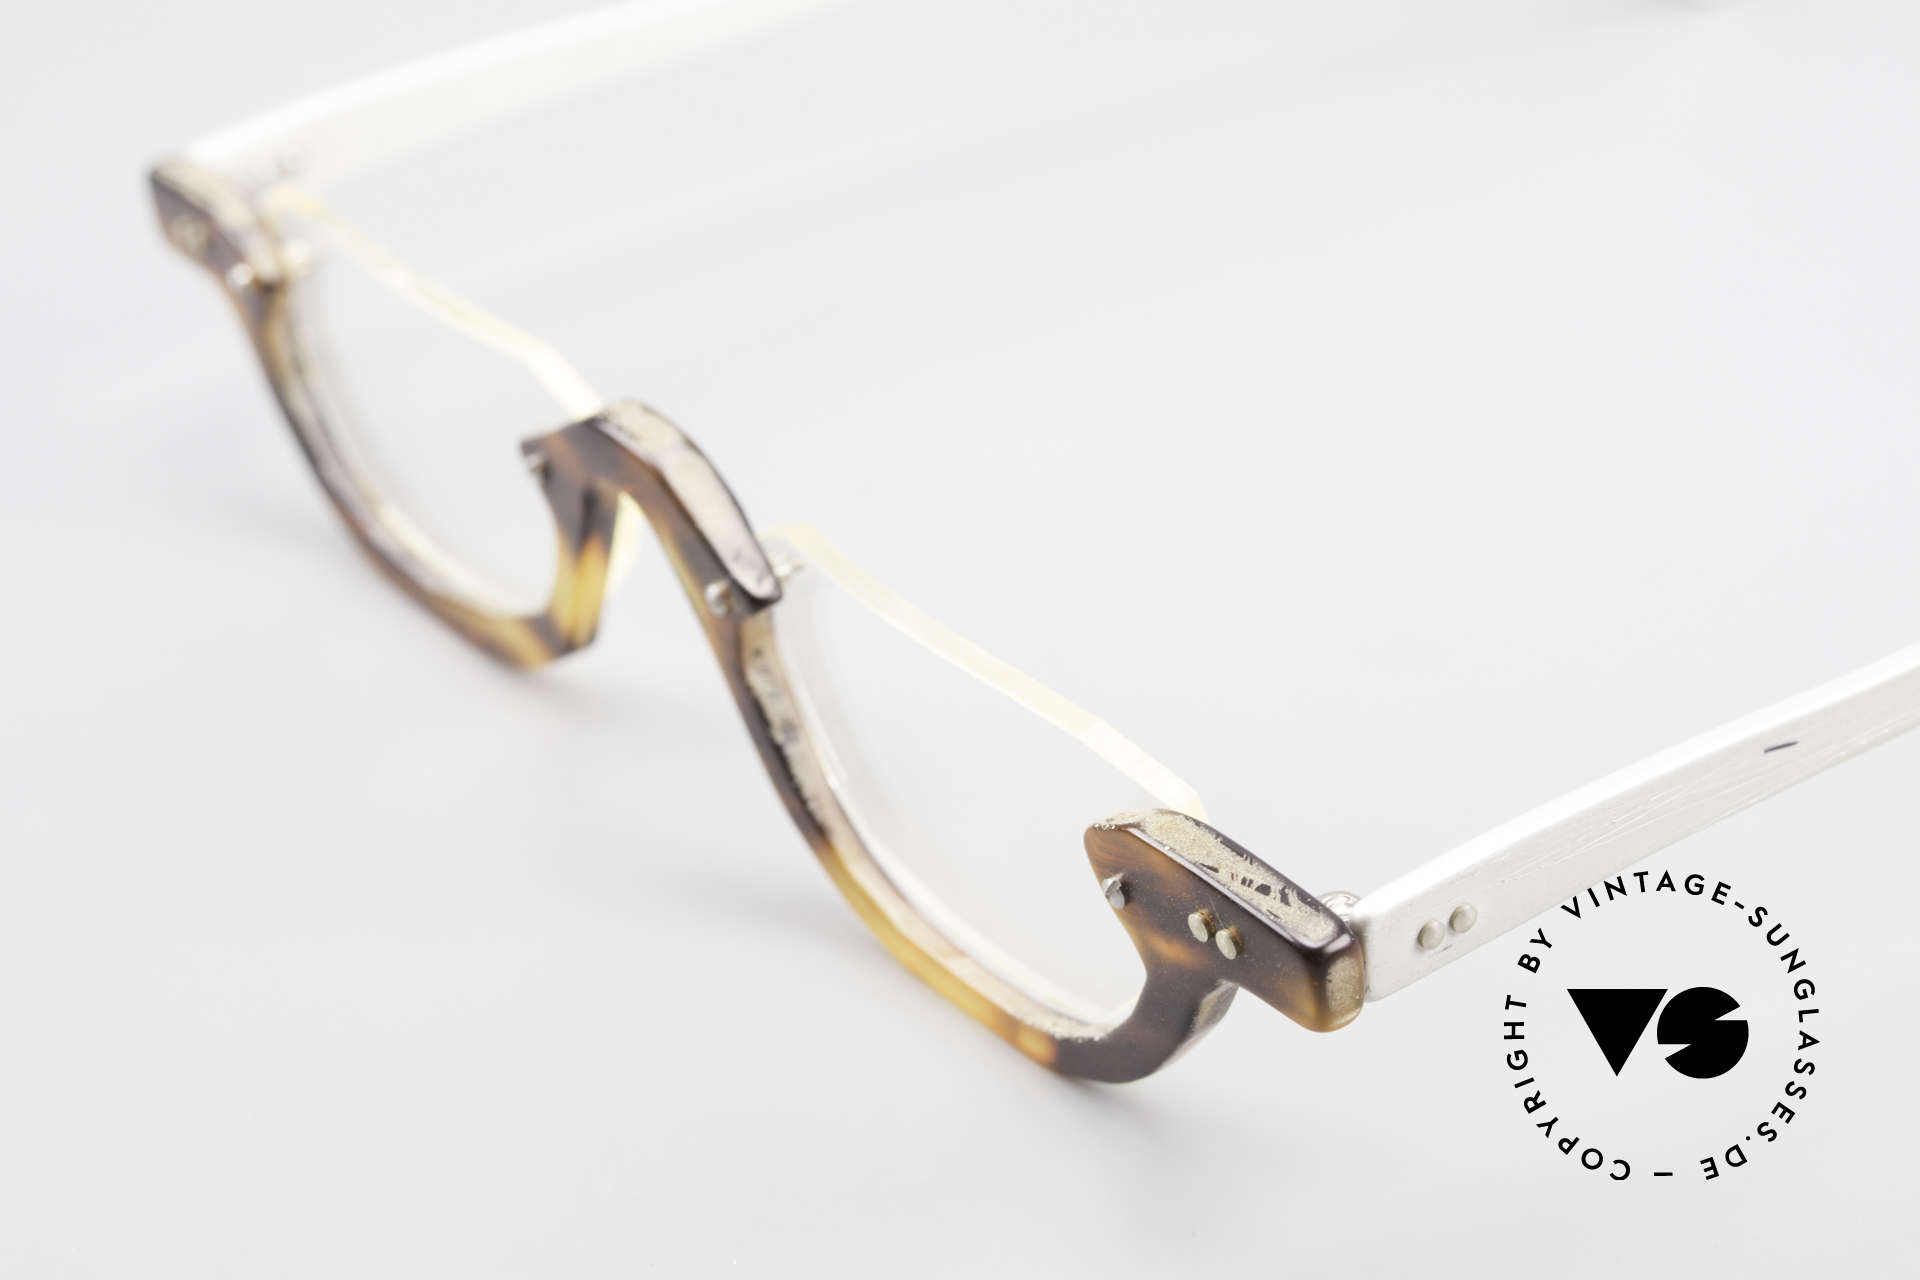 Theo Belgium Eye-Witness AE17 Crazy Reading Glasses Titanium, the fancy 'Eye-Witness' series was launched in May '95, Made for Men and Women